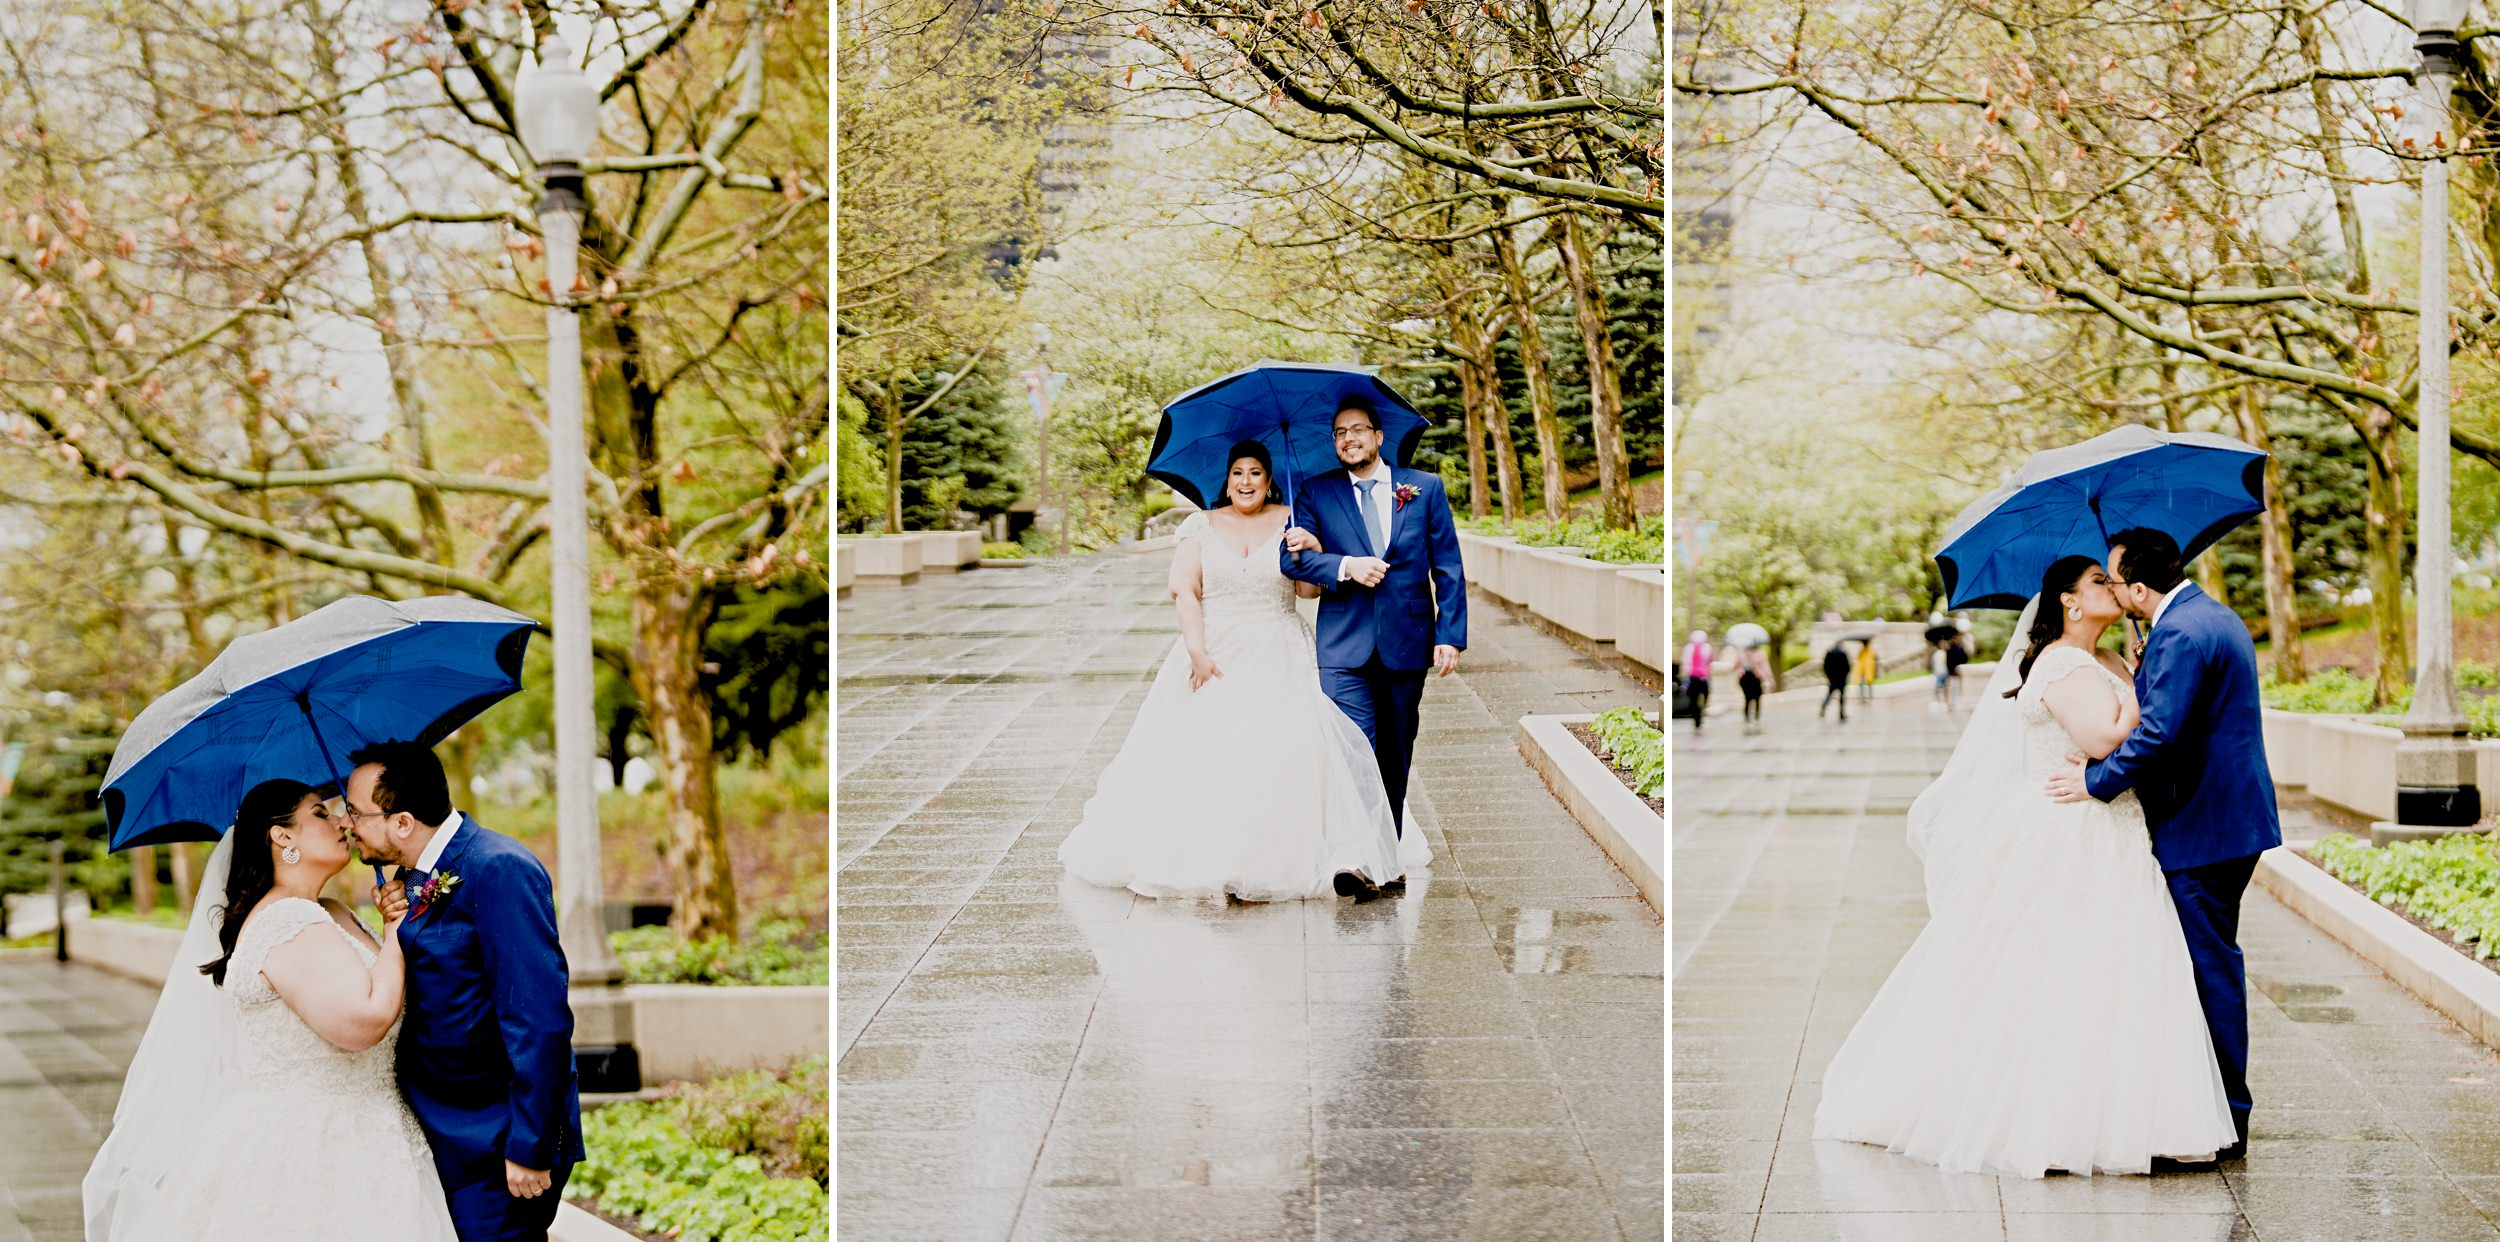 Rainy day wedding photos at Millennium Park in Chicago.